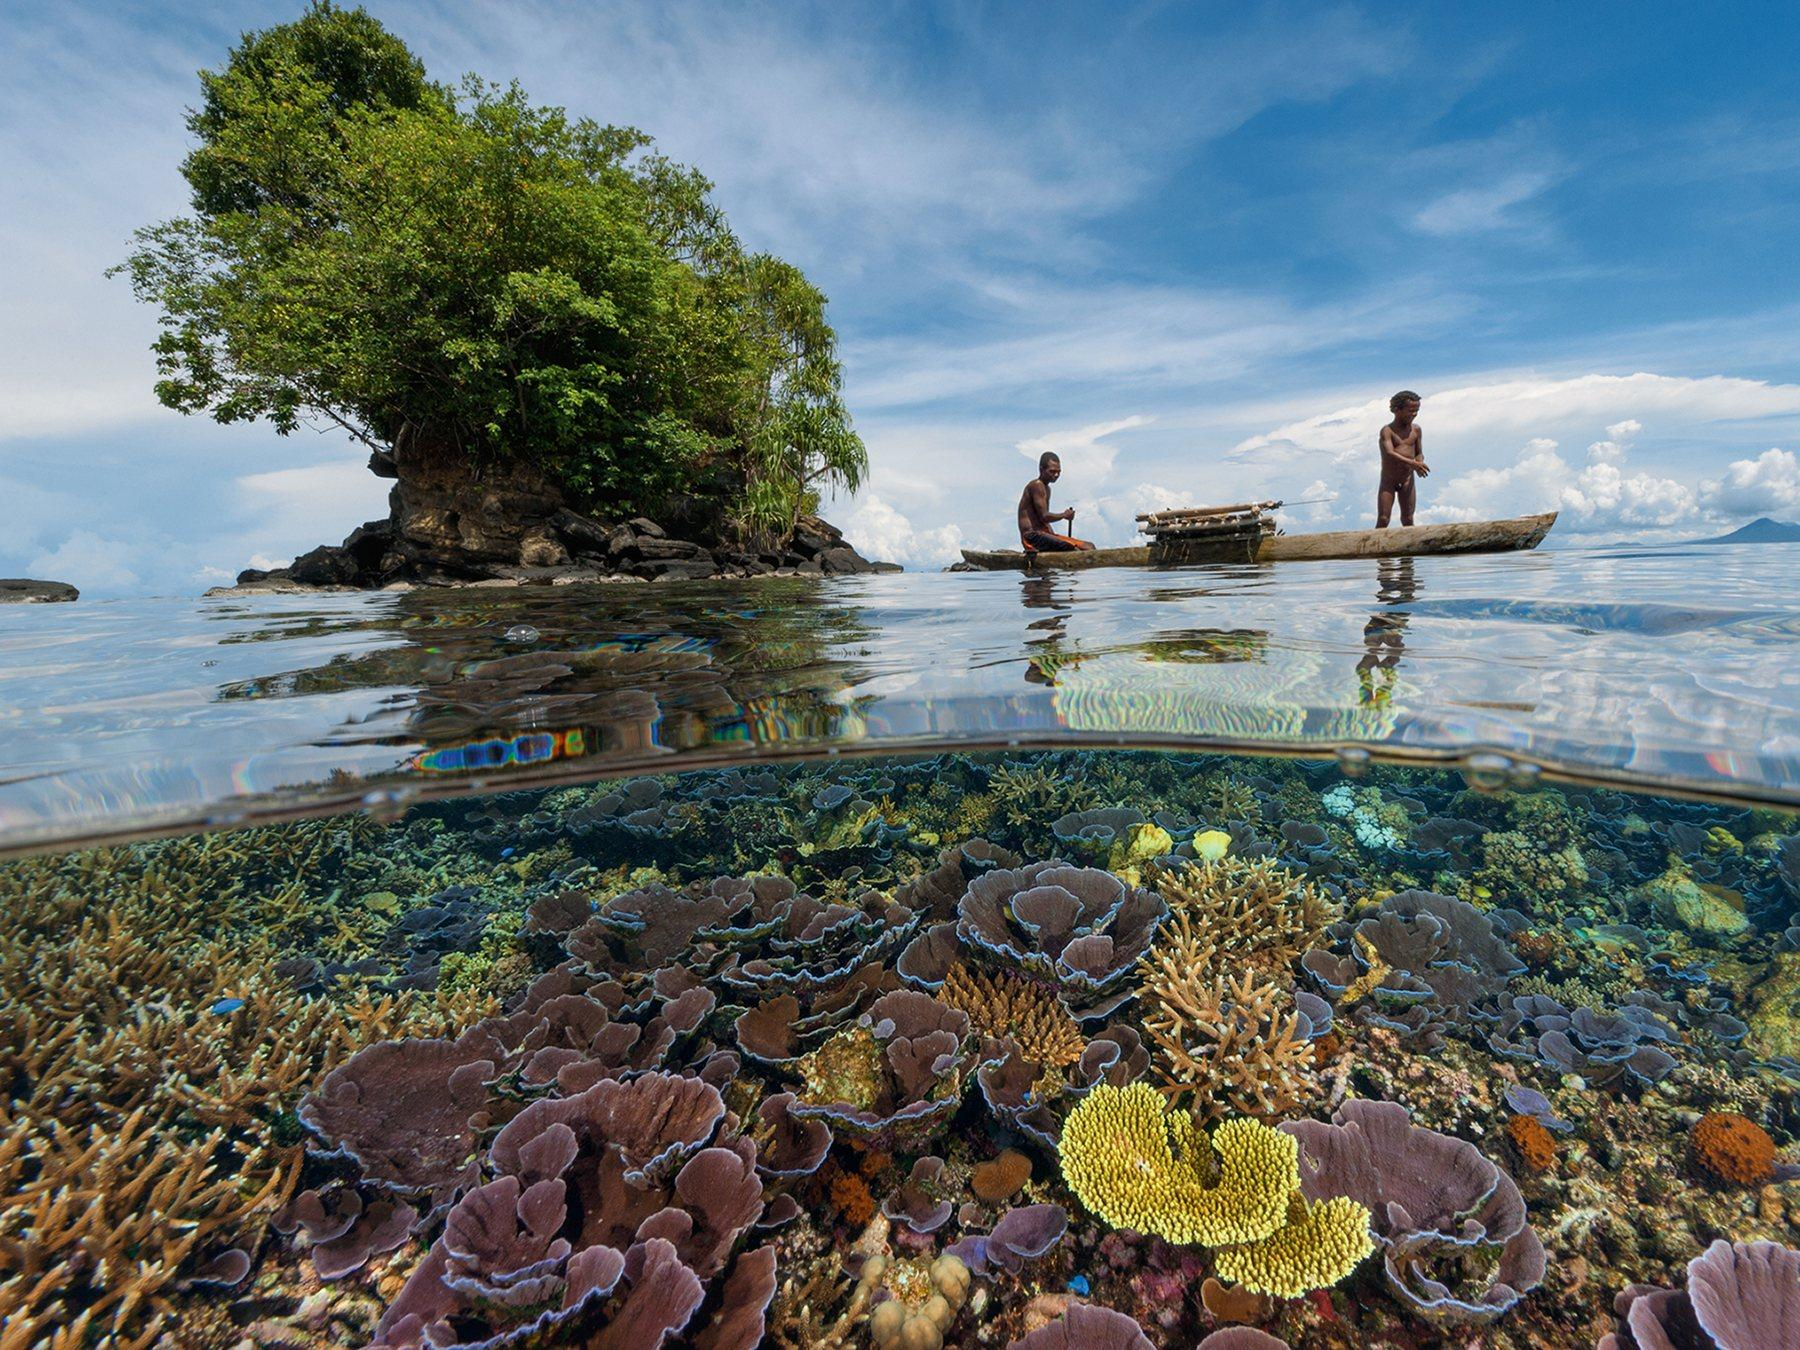 Crystal clear water of papa New Guinea: http://t.co/LgqycT0ypX